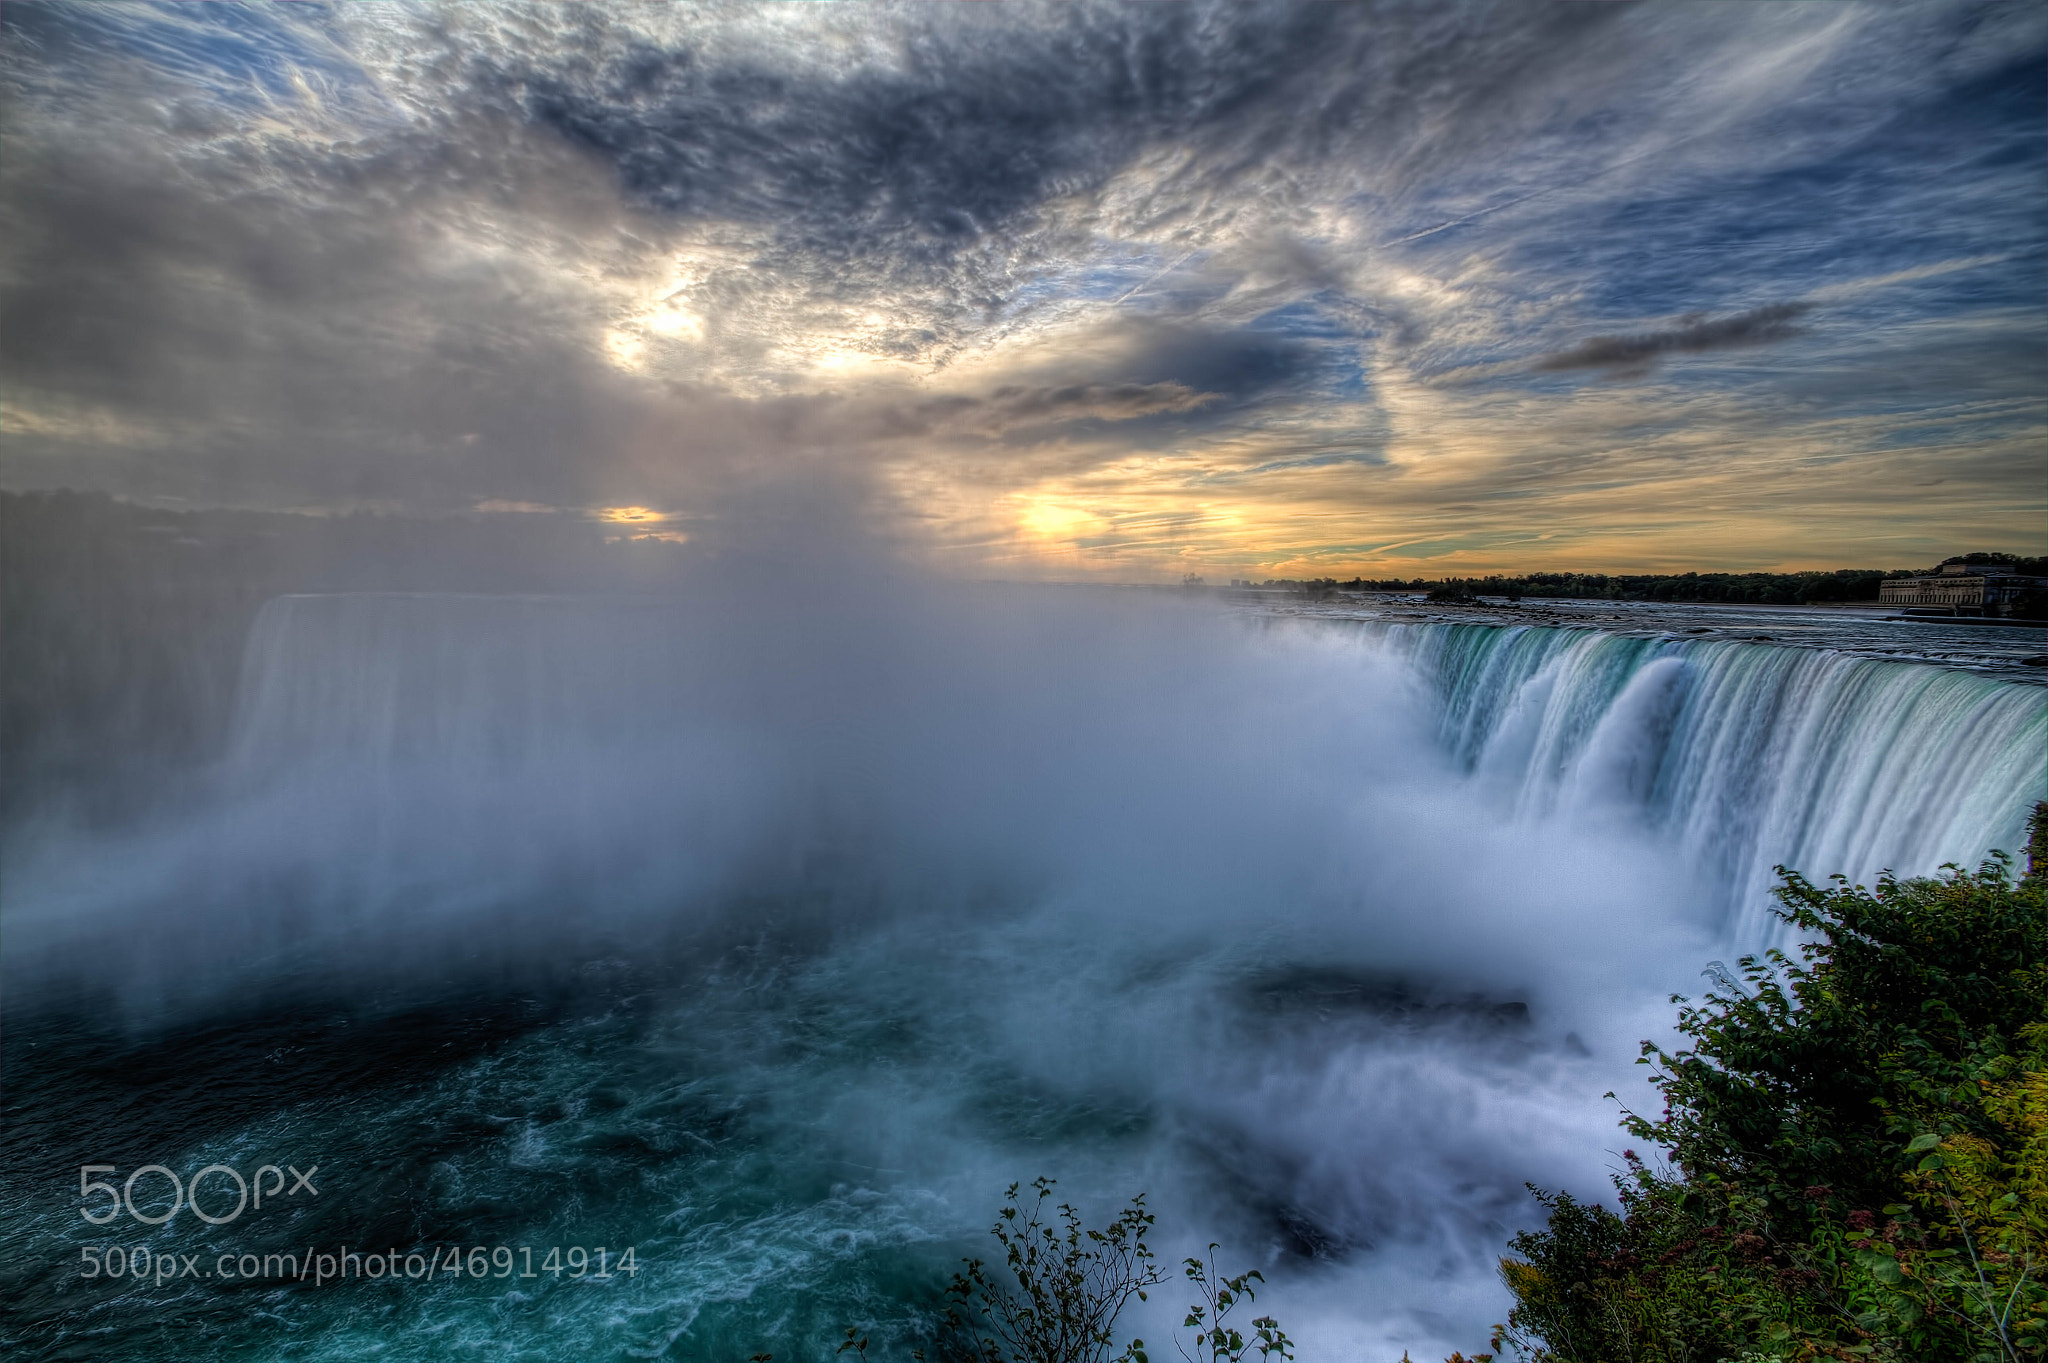 Photograph The Force of Nature by René Ladenius on 500px